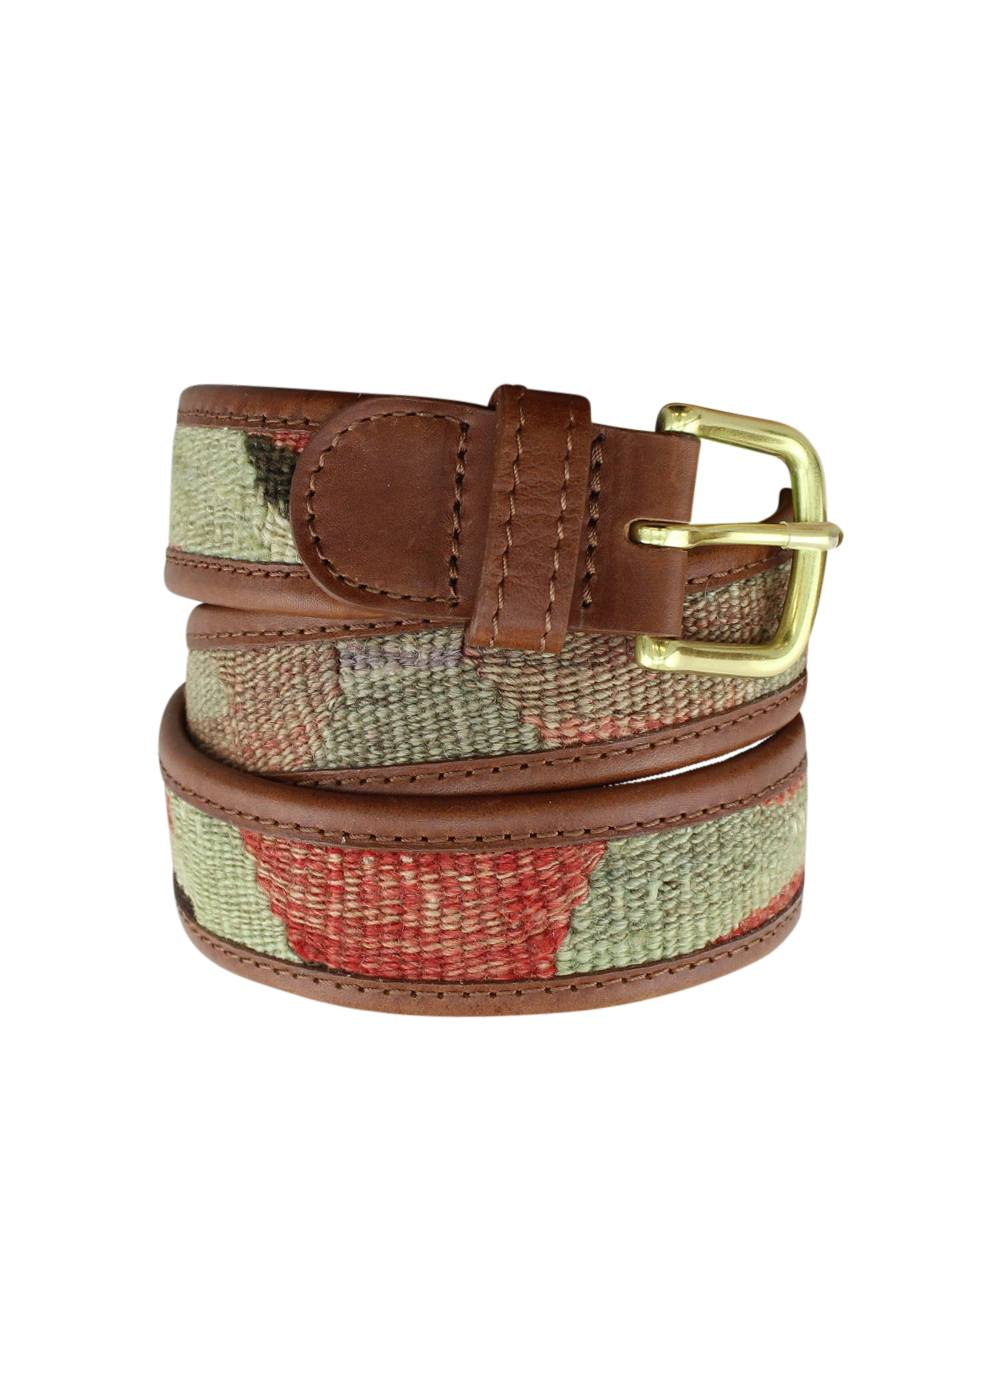 Archived Acc - Kilim Belt - Size 38